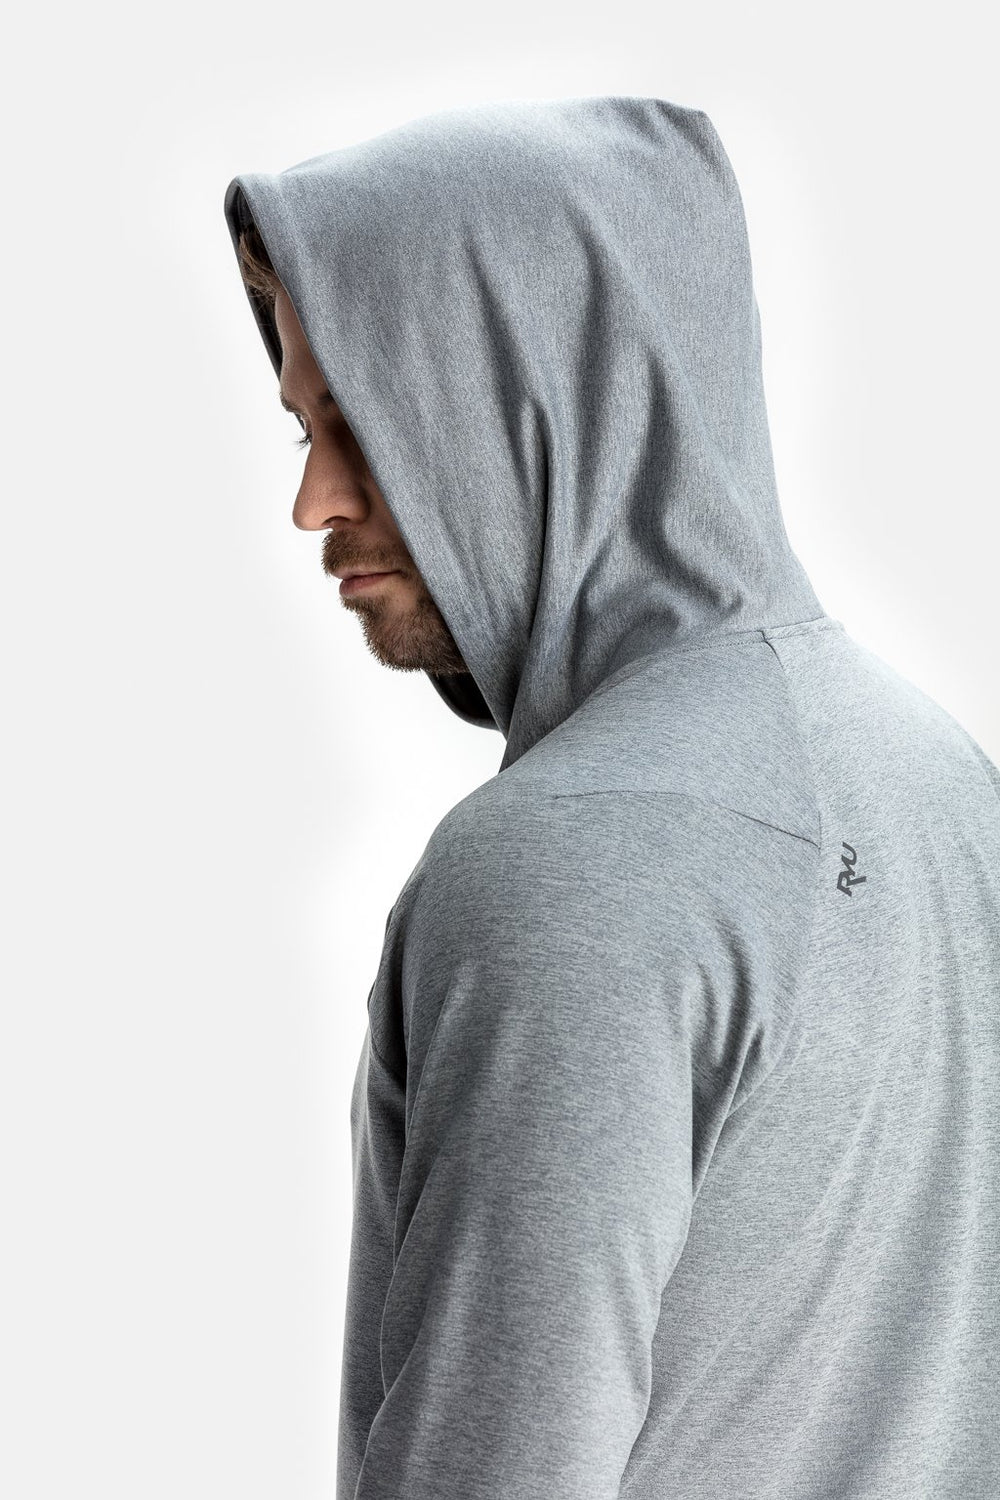 RYU Mens MidLayr Hoodie in Athletic Grey Heather